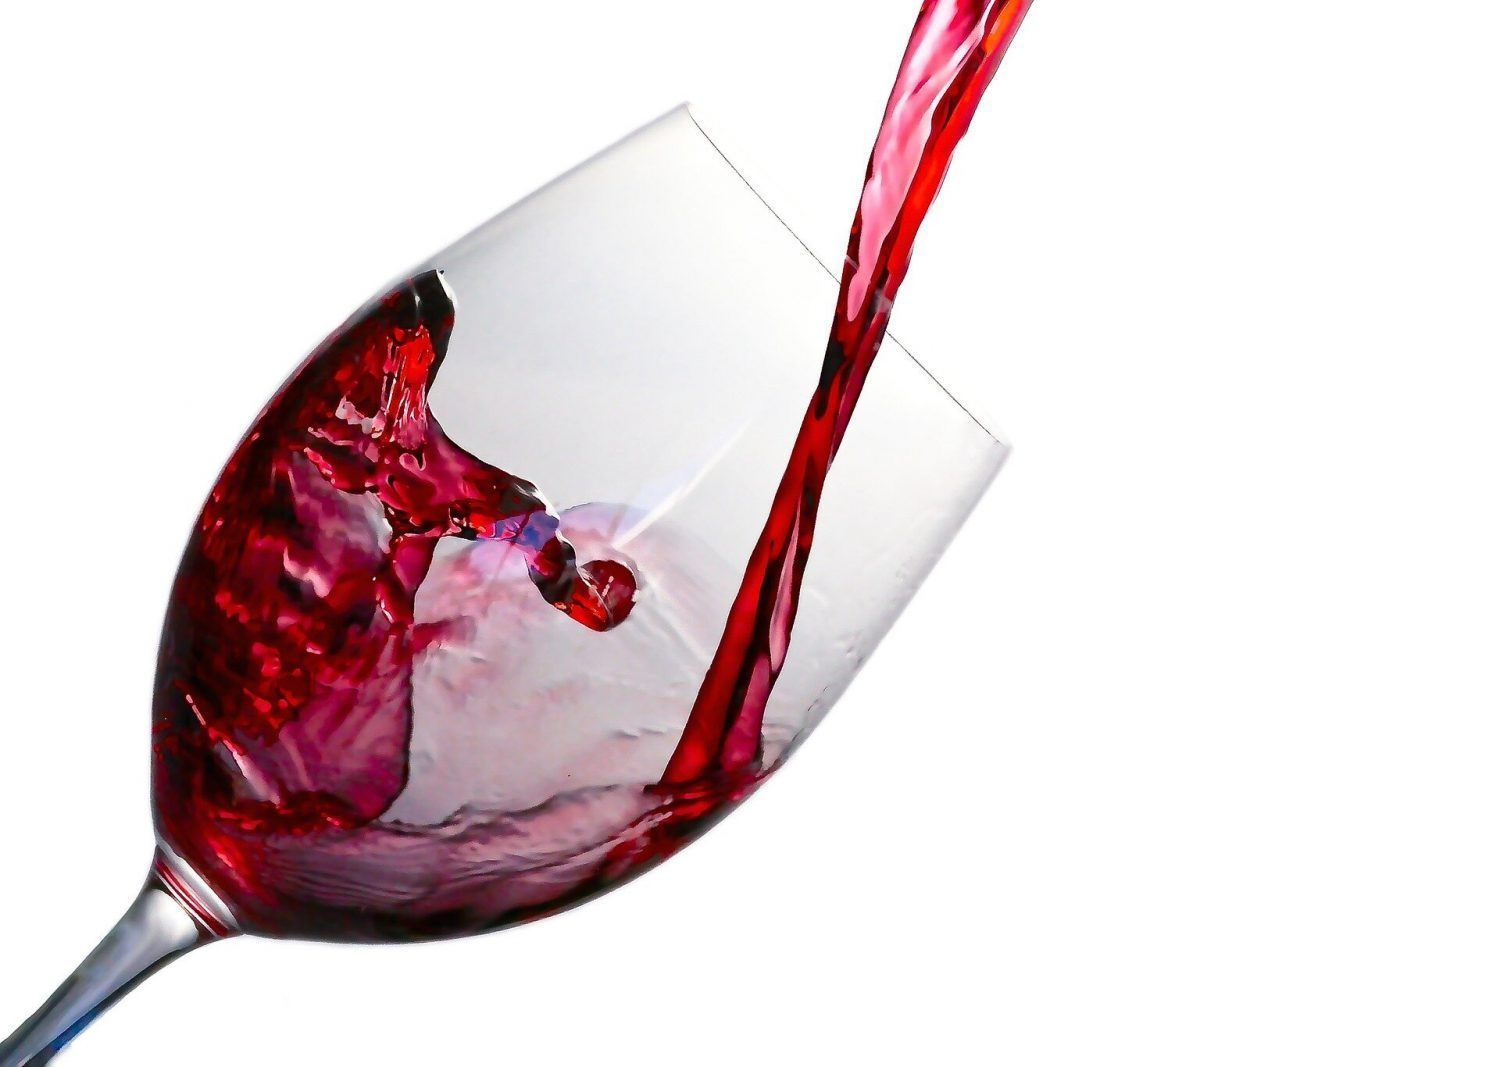 Researchers Identify Red Wine S Resveratrol Can Keep Mars Explorers Strong